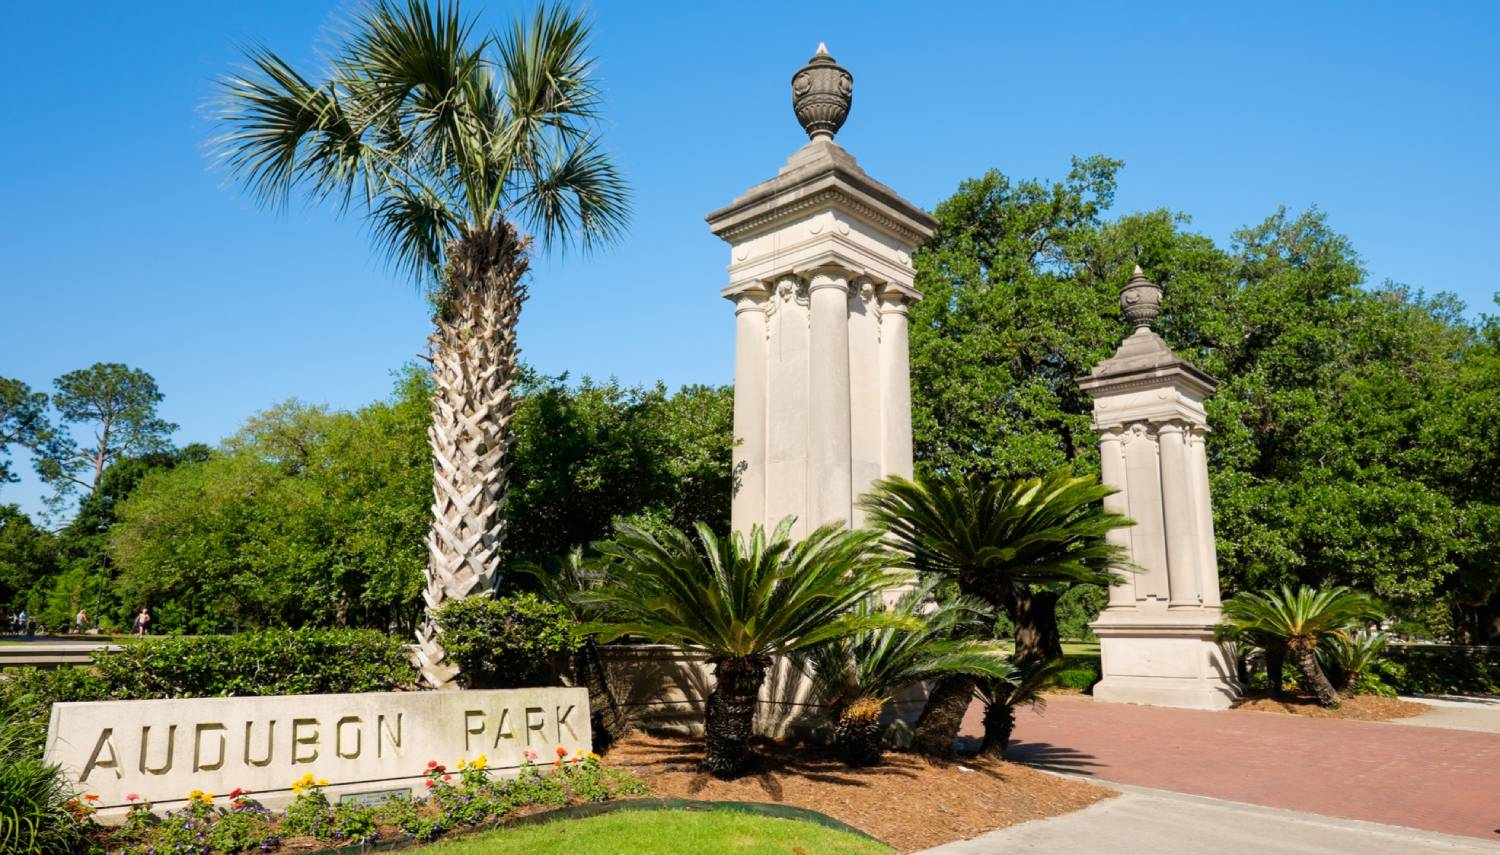 Audubon Park - Things To Do In New Orleans